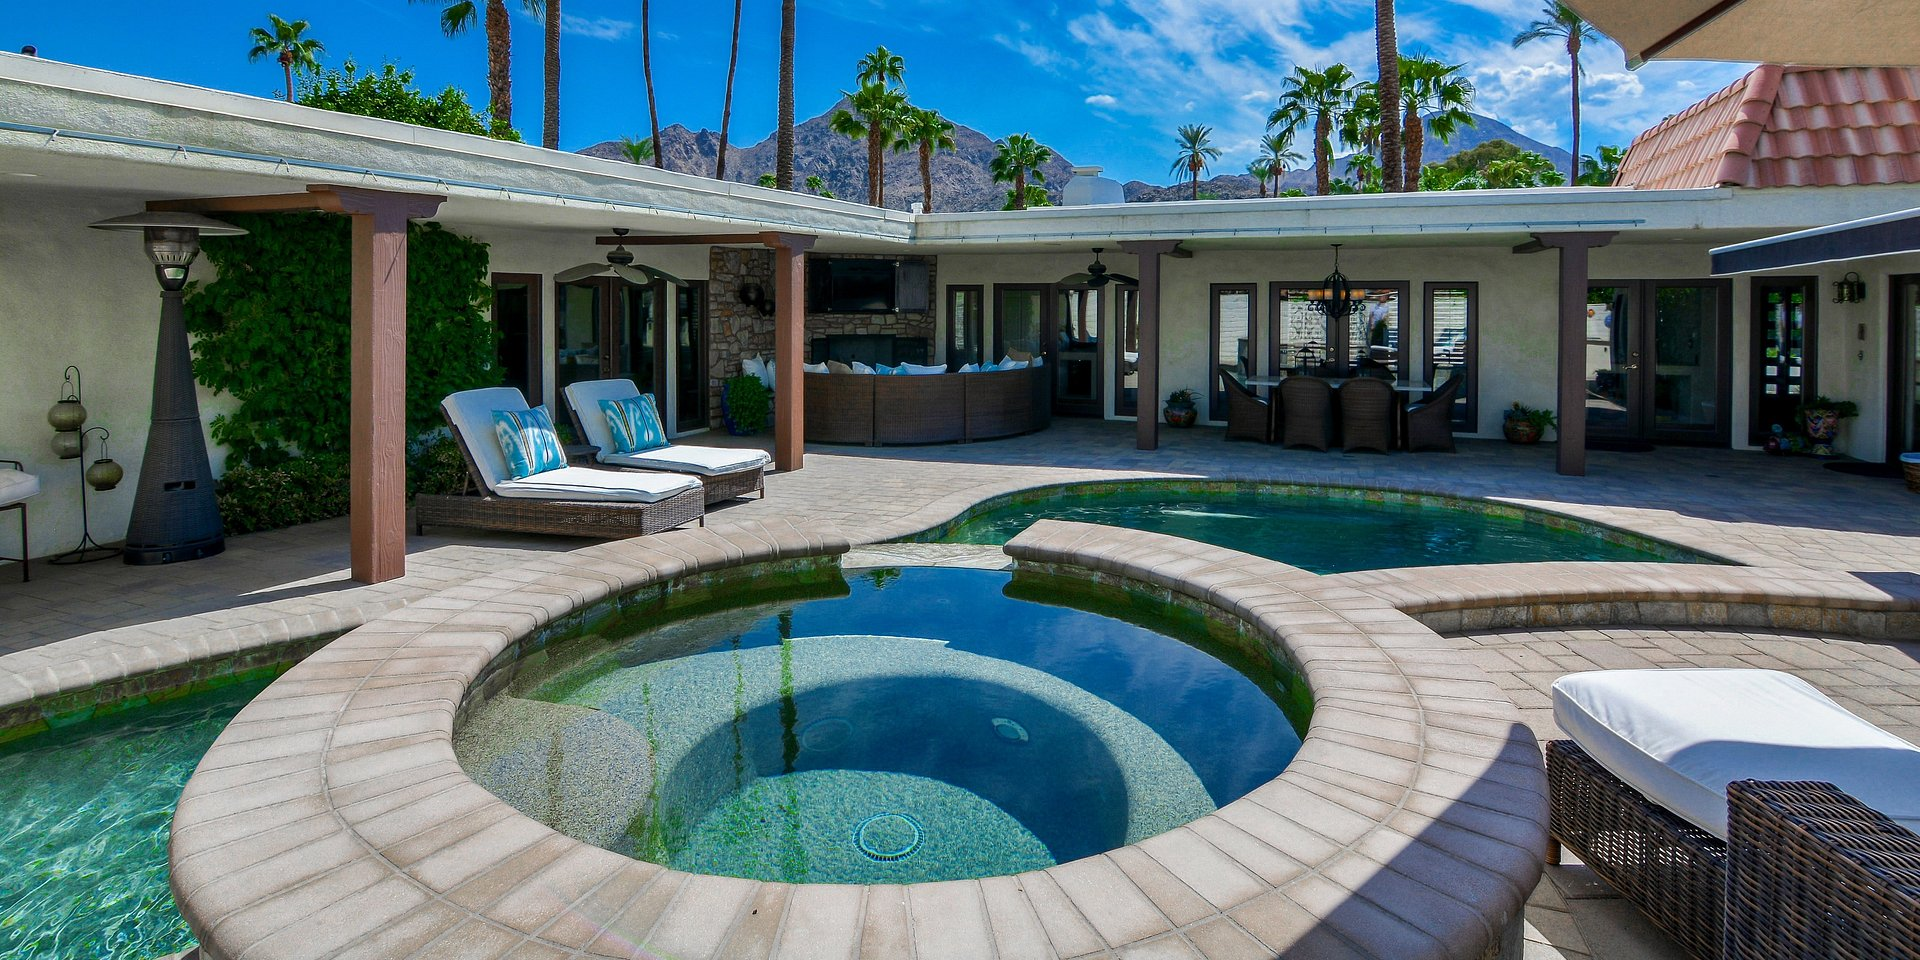 Coldwell Banker Residential Brokerage Lists Indian Wells Property for $999,000